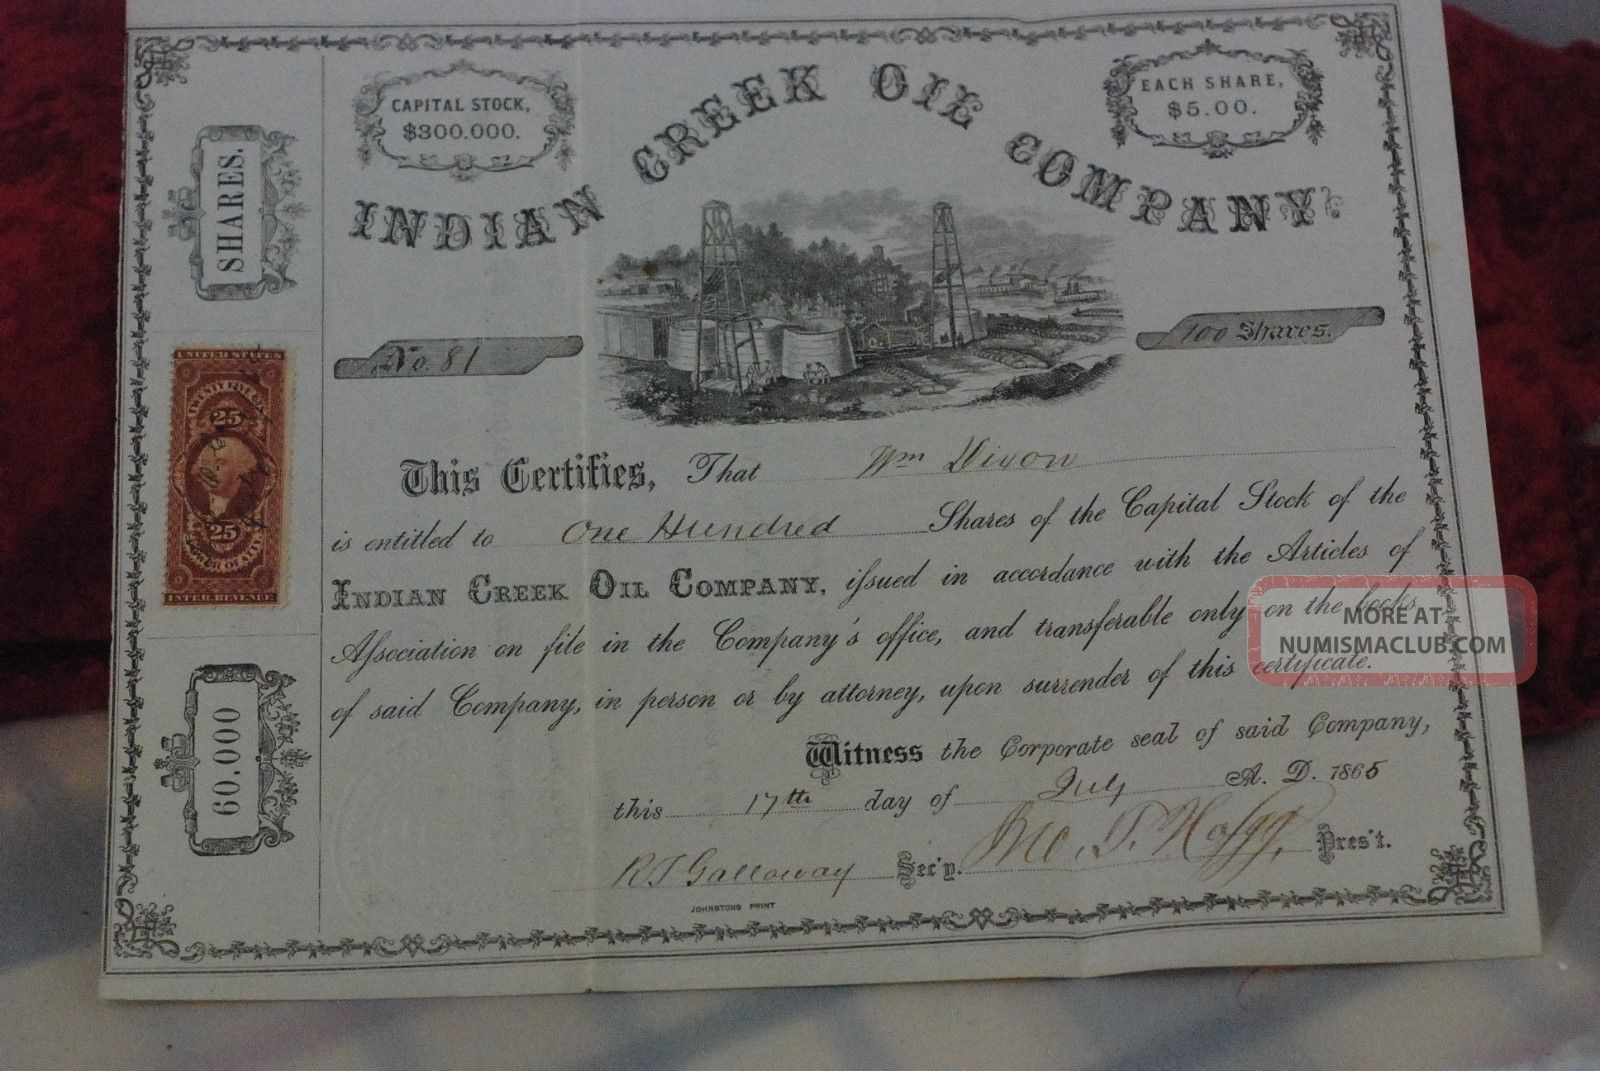 100 Shs Indian Creek Oil Company,  Pennsylvania,  Stock Certificate,  July 17th,  1865 Stocks & Bonds, Scripophily photo